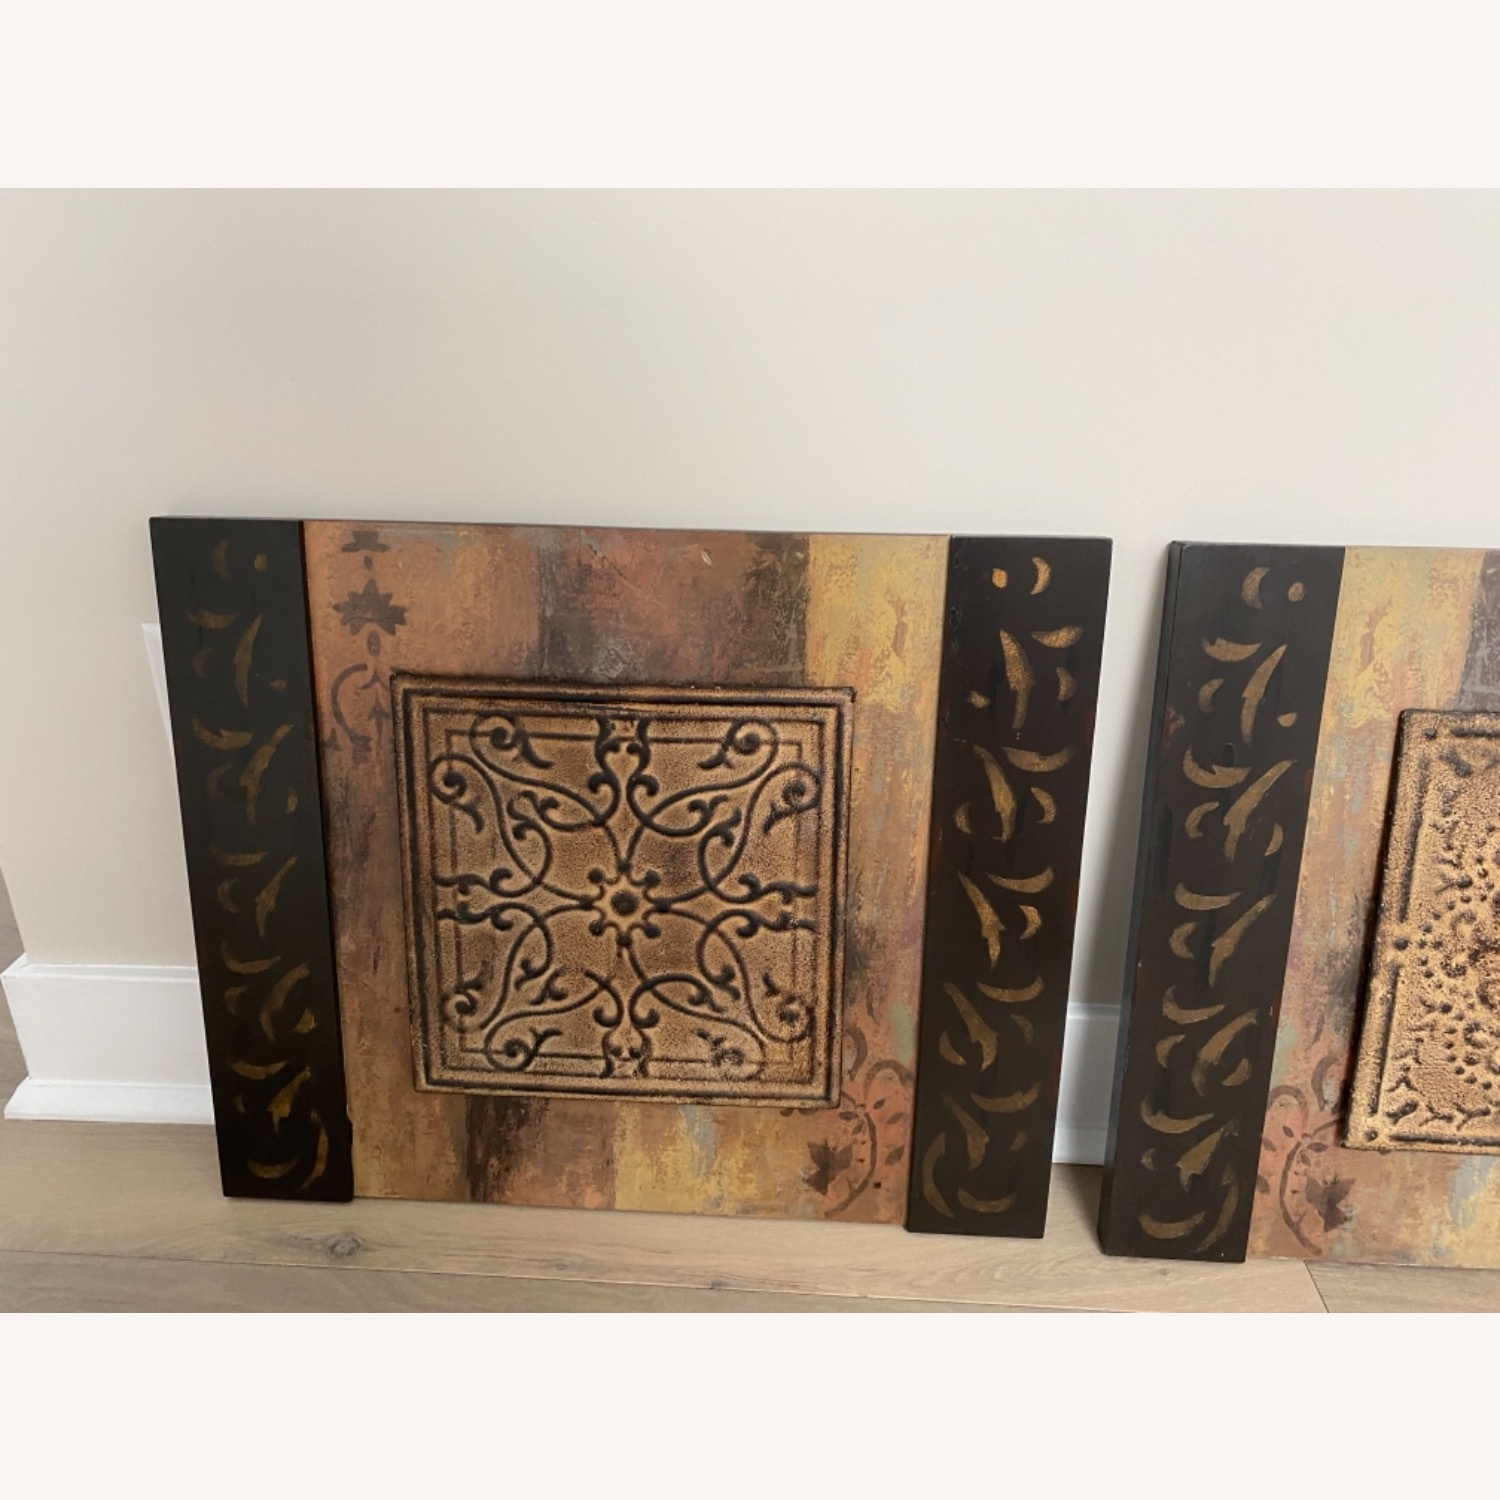 Uttermost Tribal Wall Decor - image-3